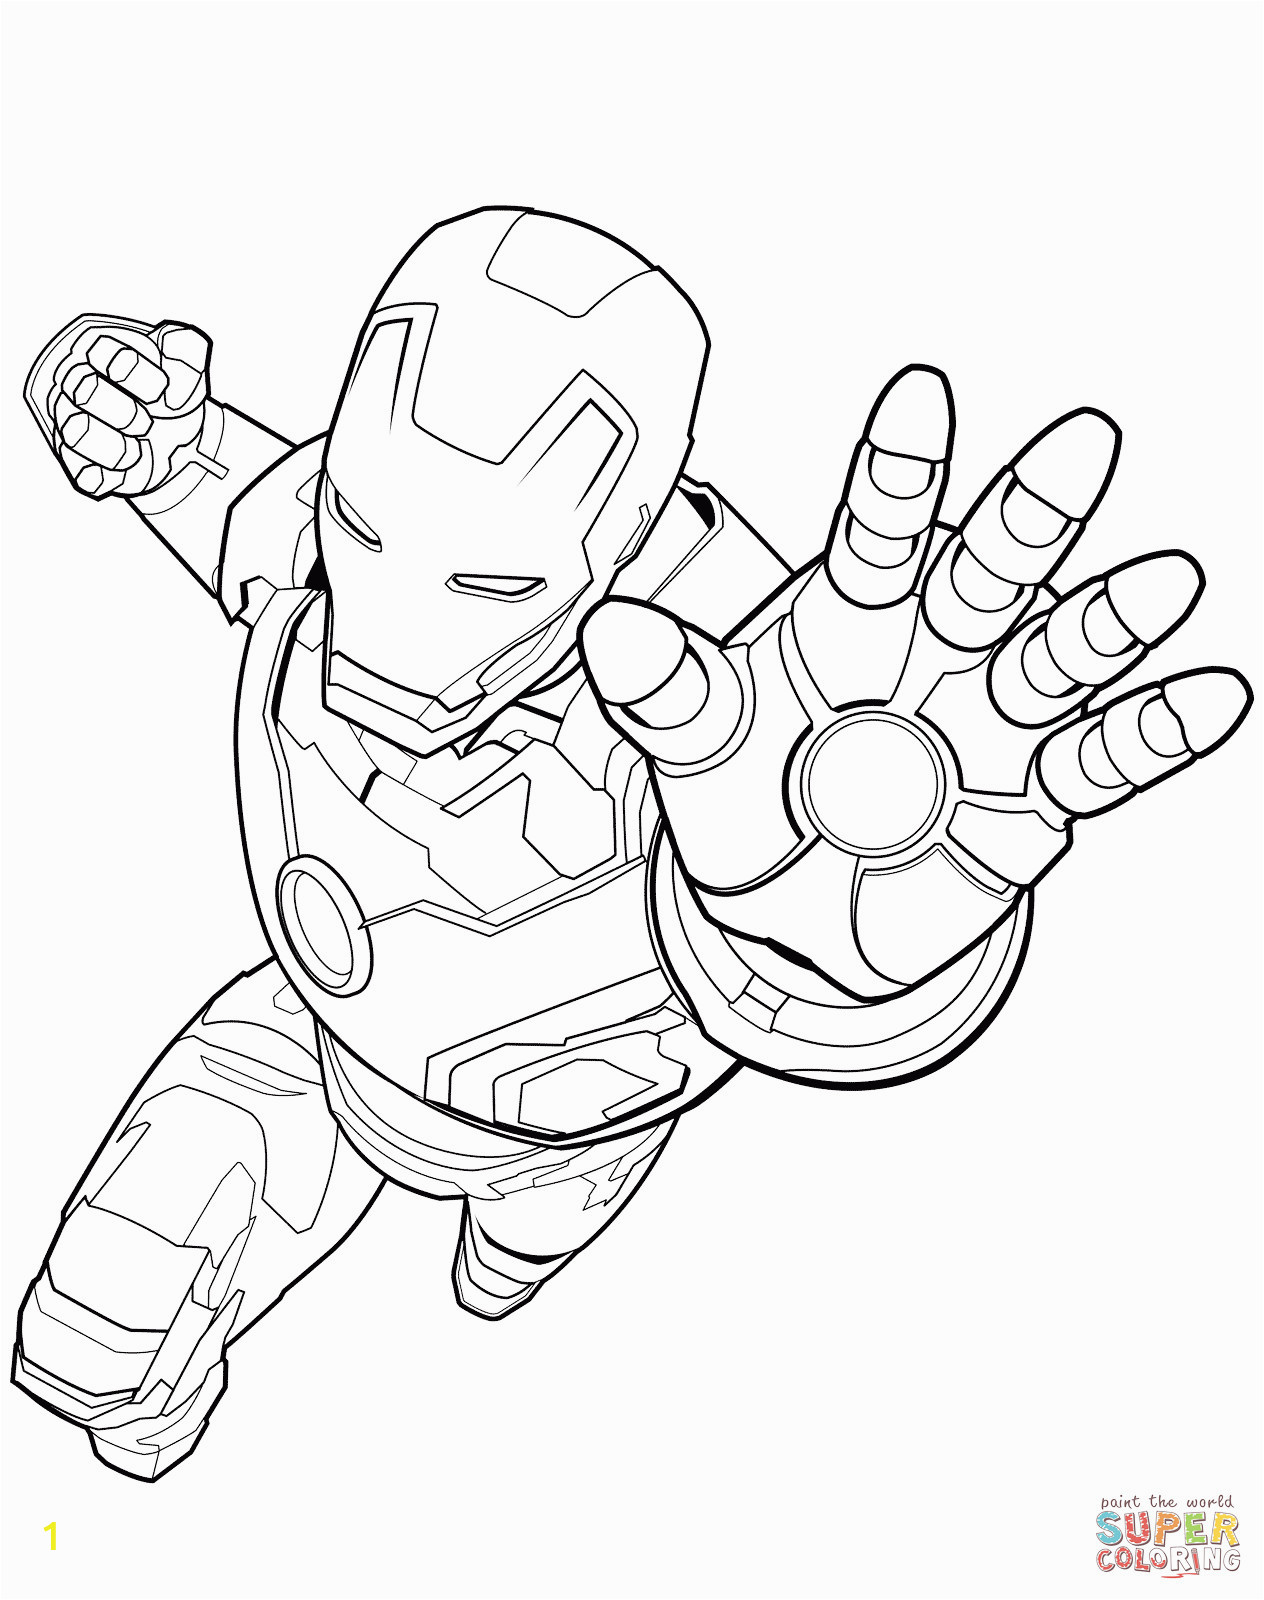 captain americaring sheet avengers iron man page in ideas america coloring pages printable marvel most mean scarlet witch black panther movie lego guardians of the